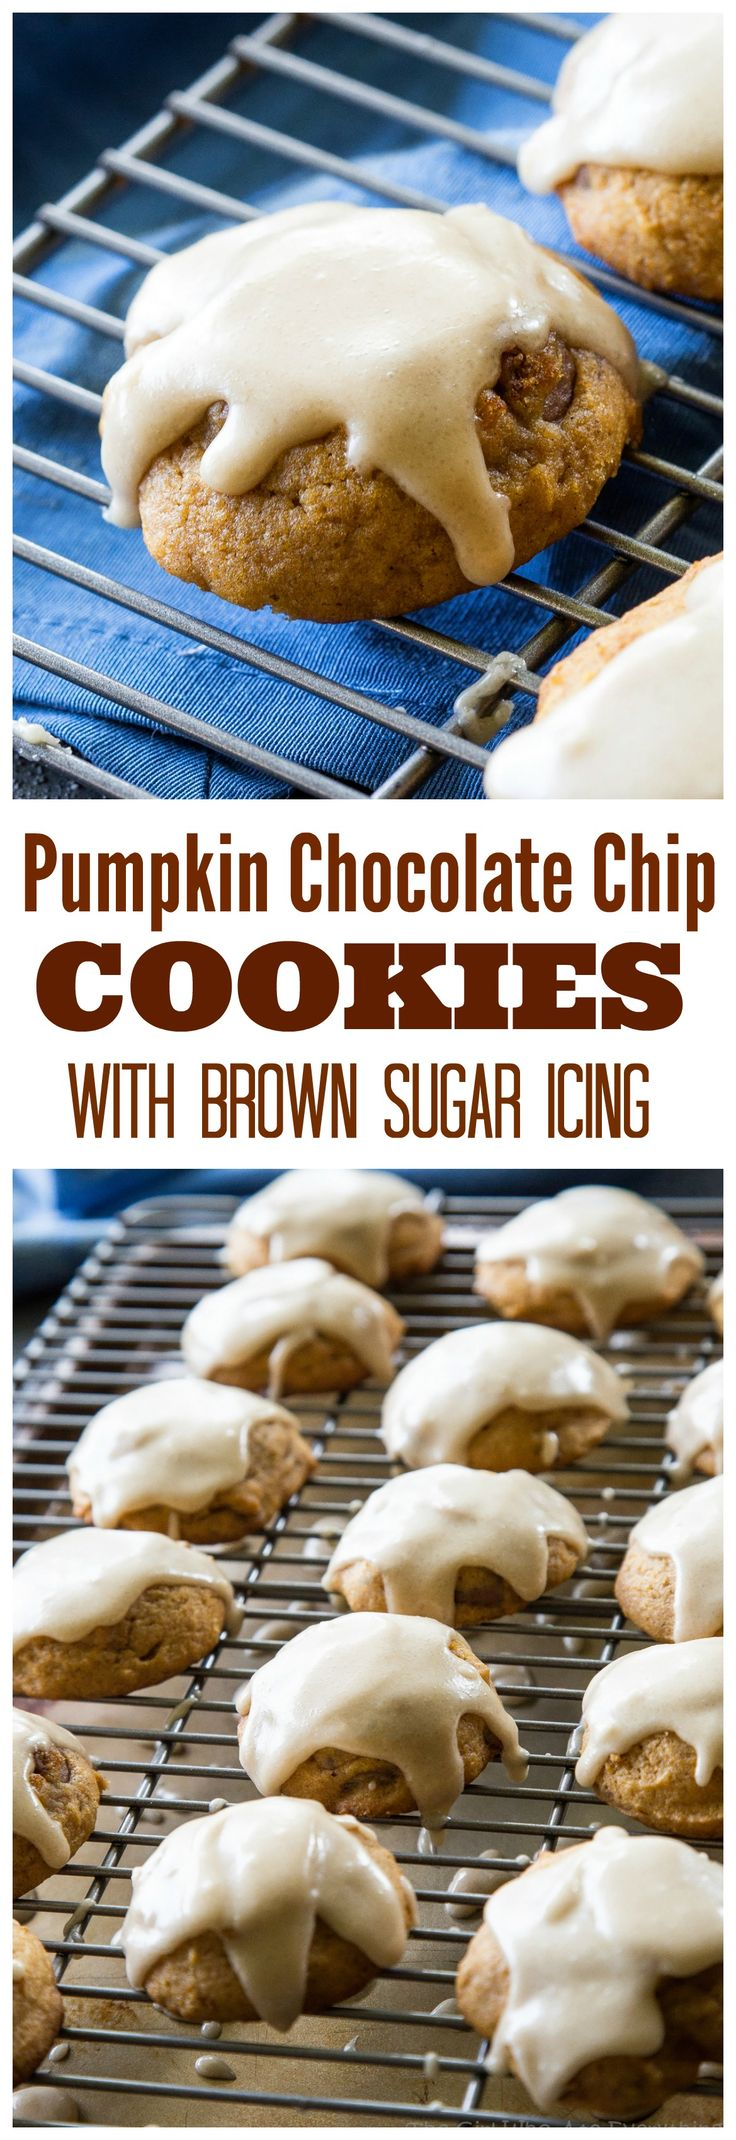 Pumpkin Chocolate Chip Cookies with Brown Sugar Icing - these soft pumpkin cookies will be a fall favorite every year. the-girl-who-ate-everything.com